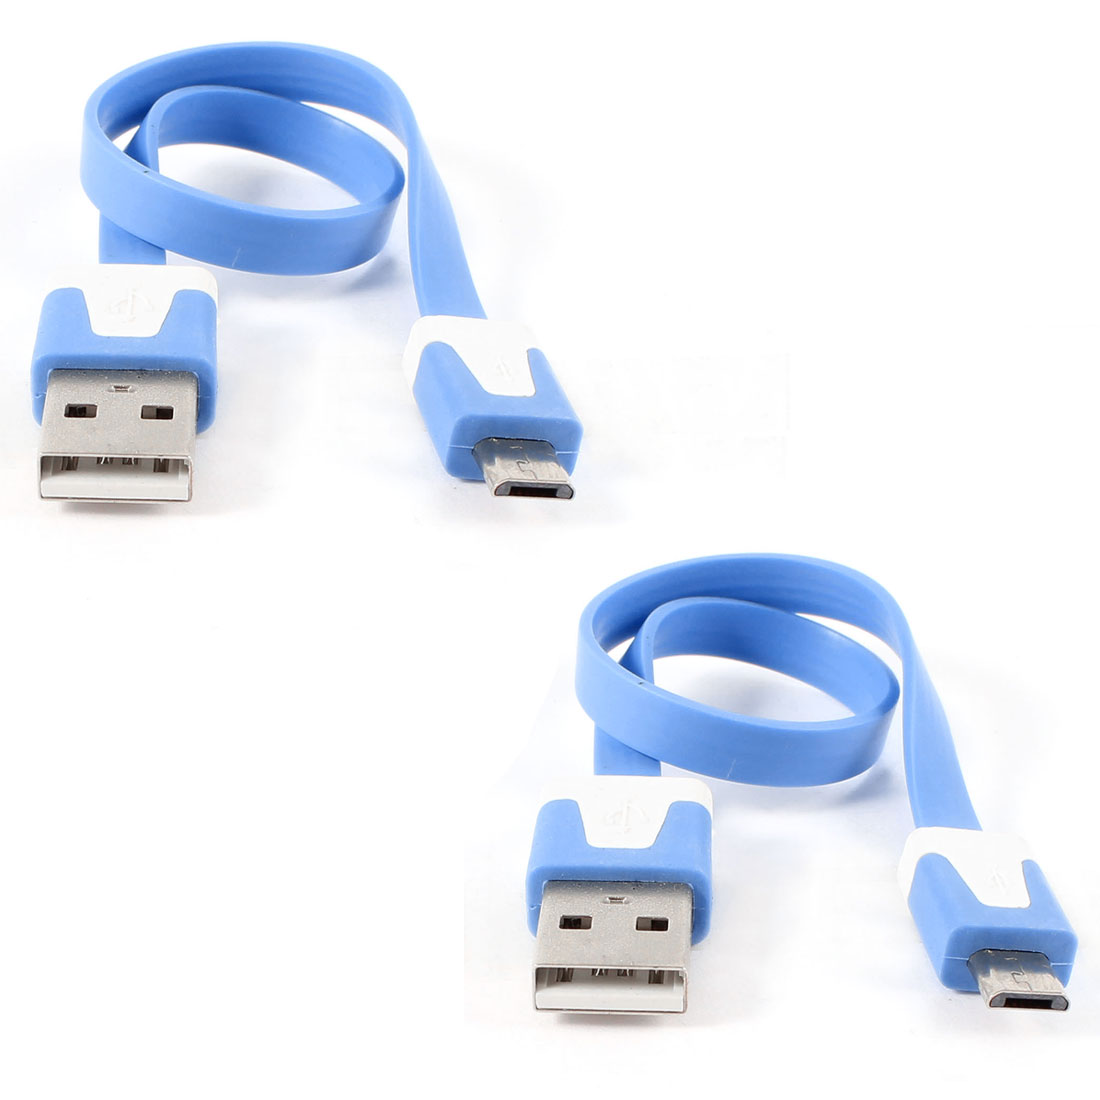 Unique Bargains 2pcs Blue USB2.0 A to Micro B 5Pin M/M Data Charger Flat Cable 23cm for HTC